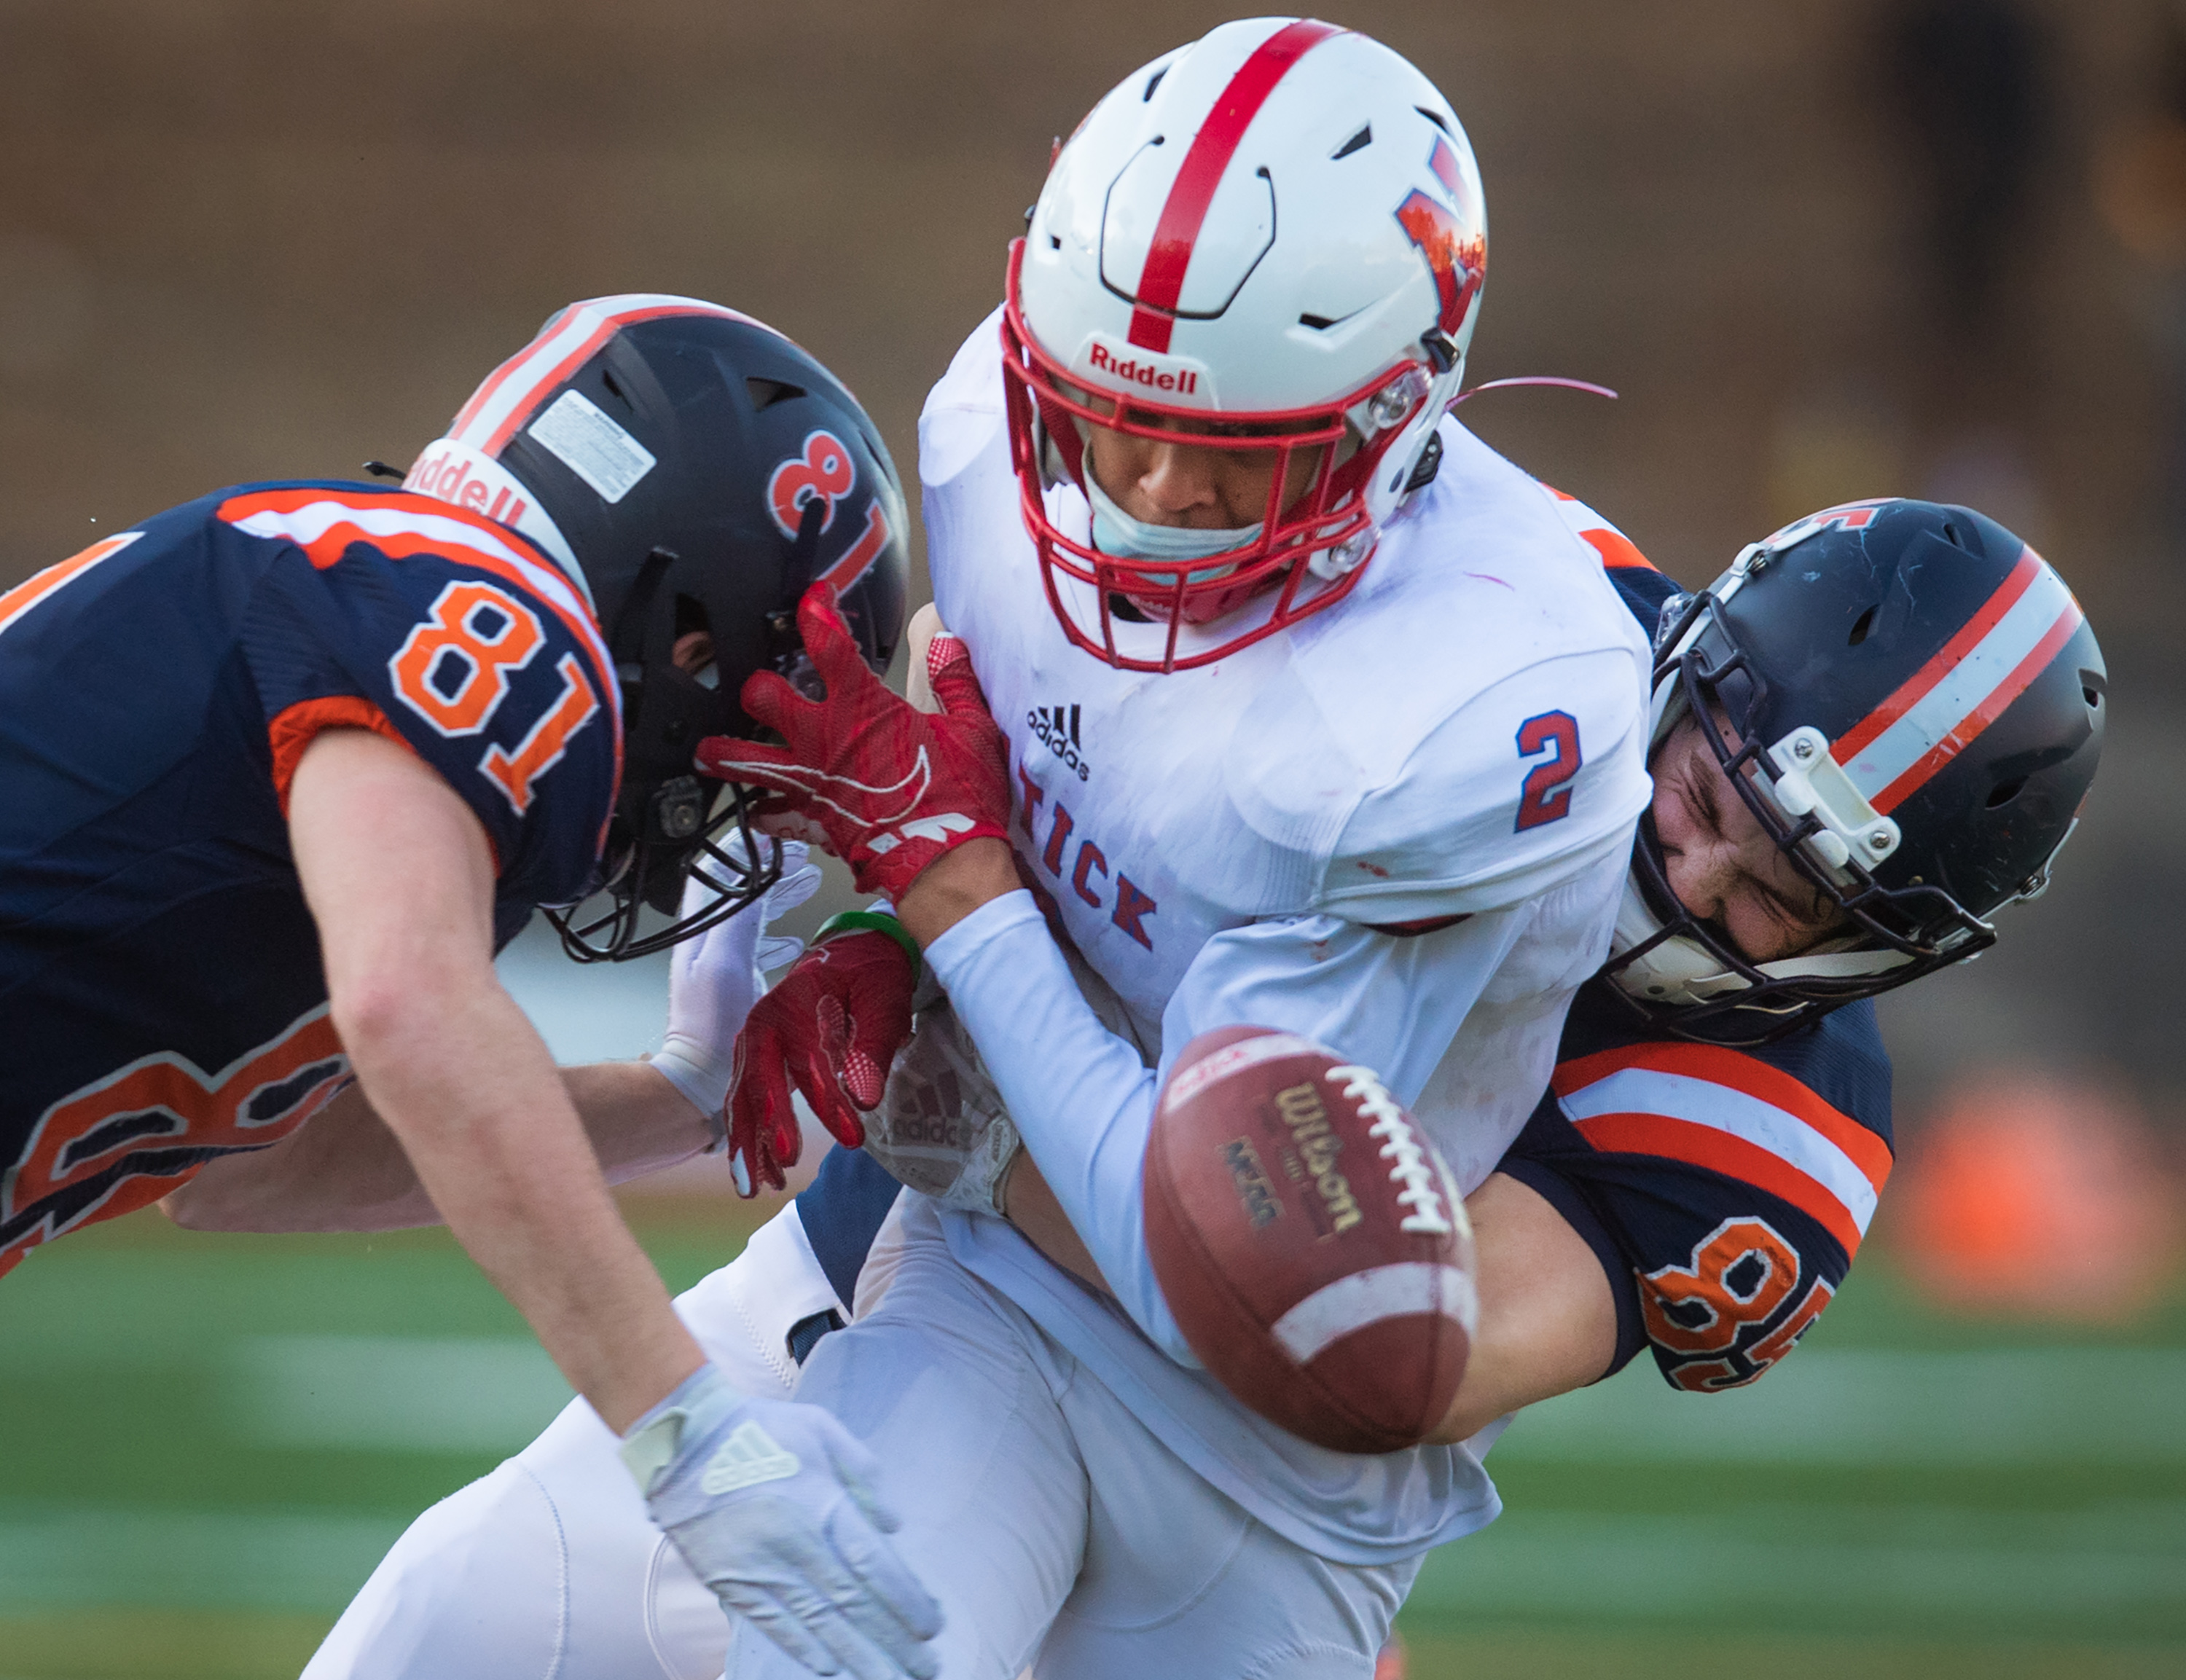 A crunching hit from Walpole's James Maguire (left) and Cole Tashjian separated Natick's Nick Ofodile (2) from the ball in Friday night's Bay State Conference game.